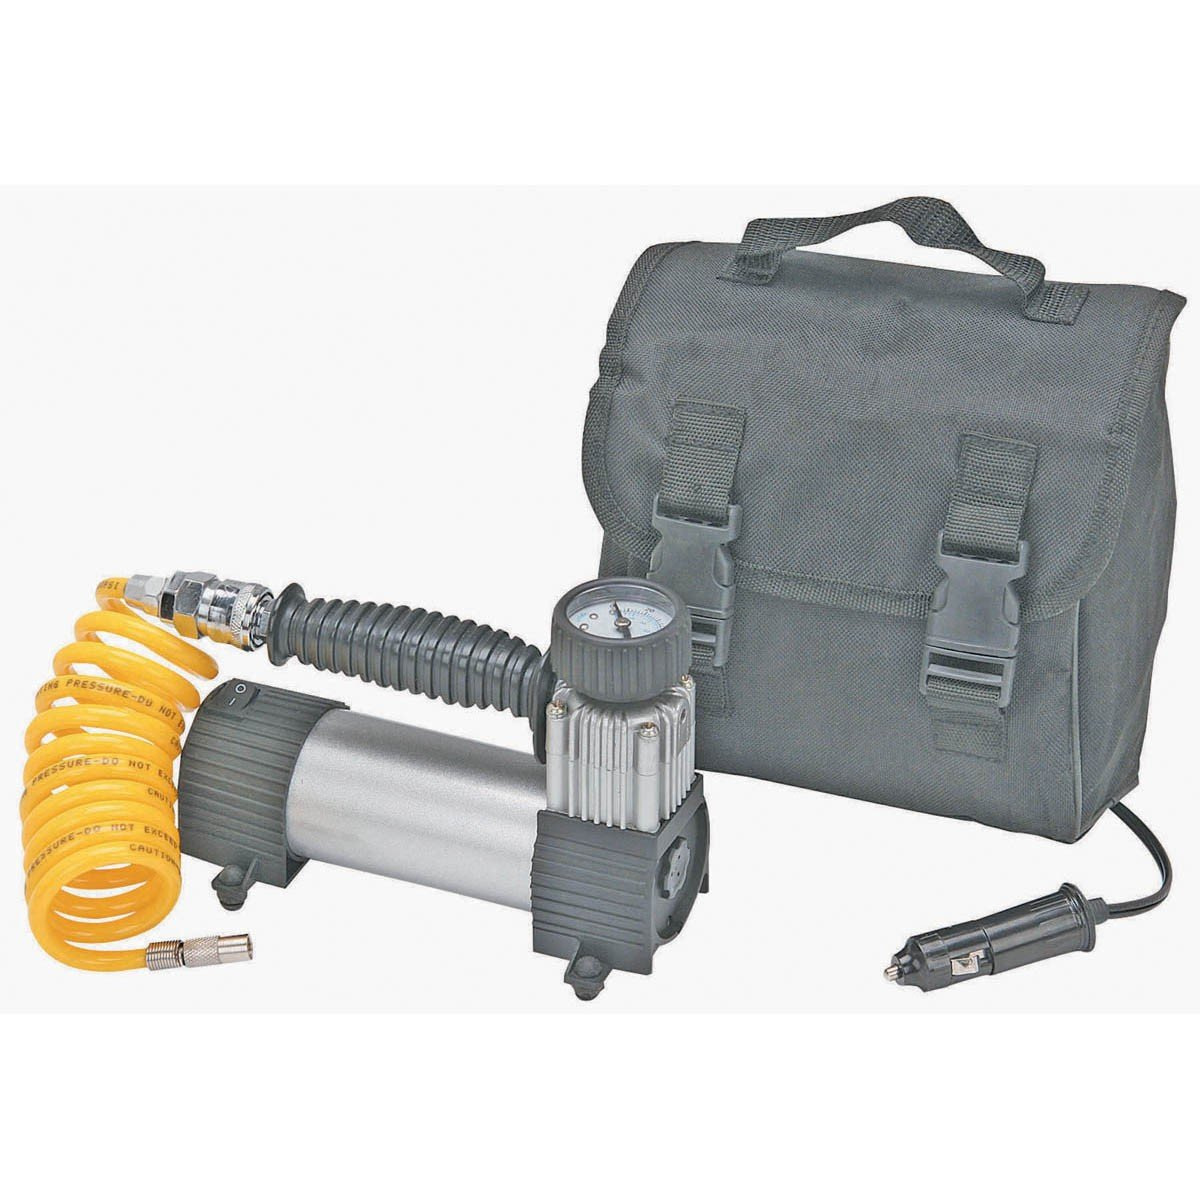 12 Volt, 100 PSI High Volume Air Compressor Pittsburgh - item#96068